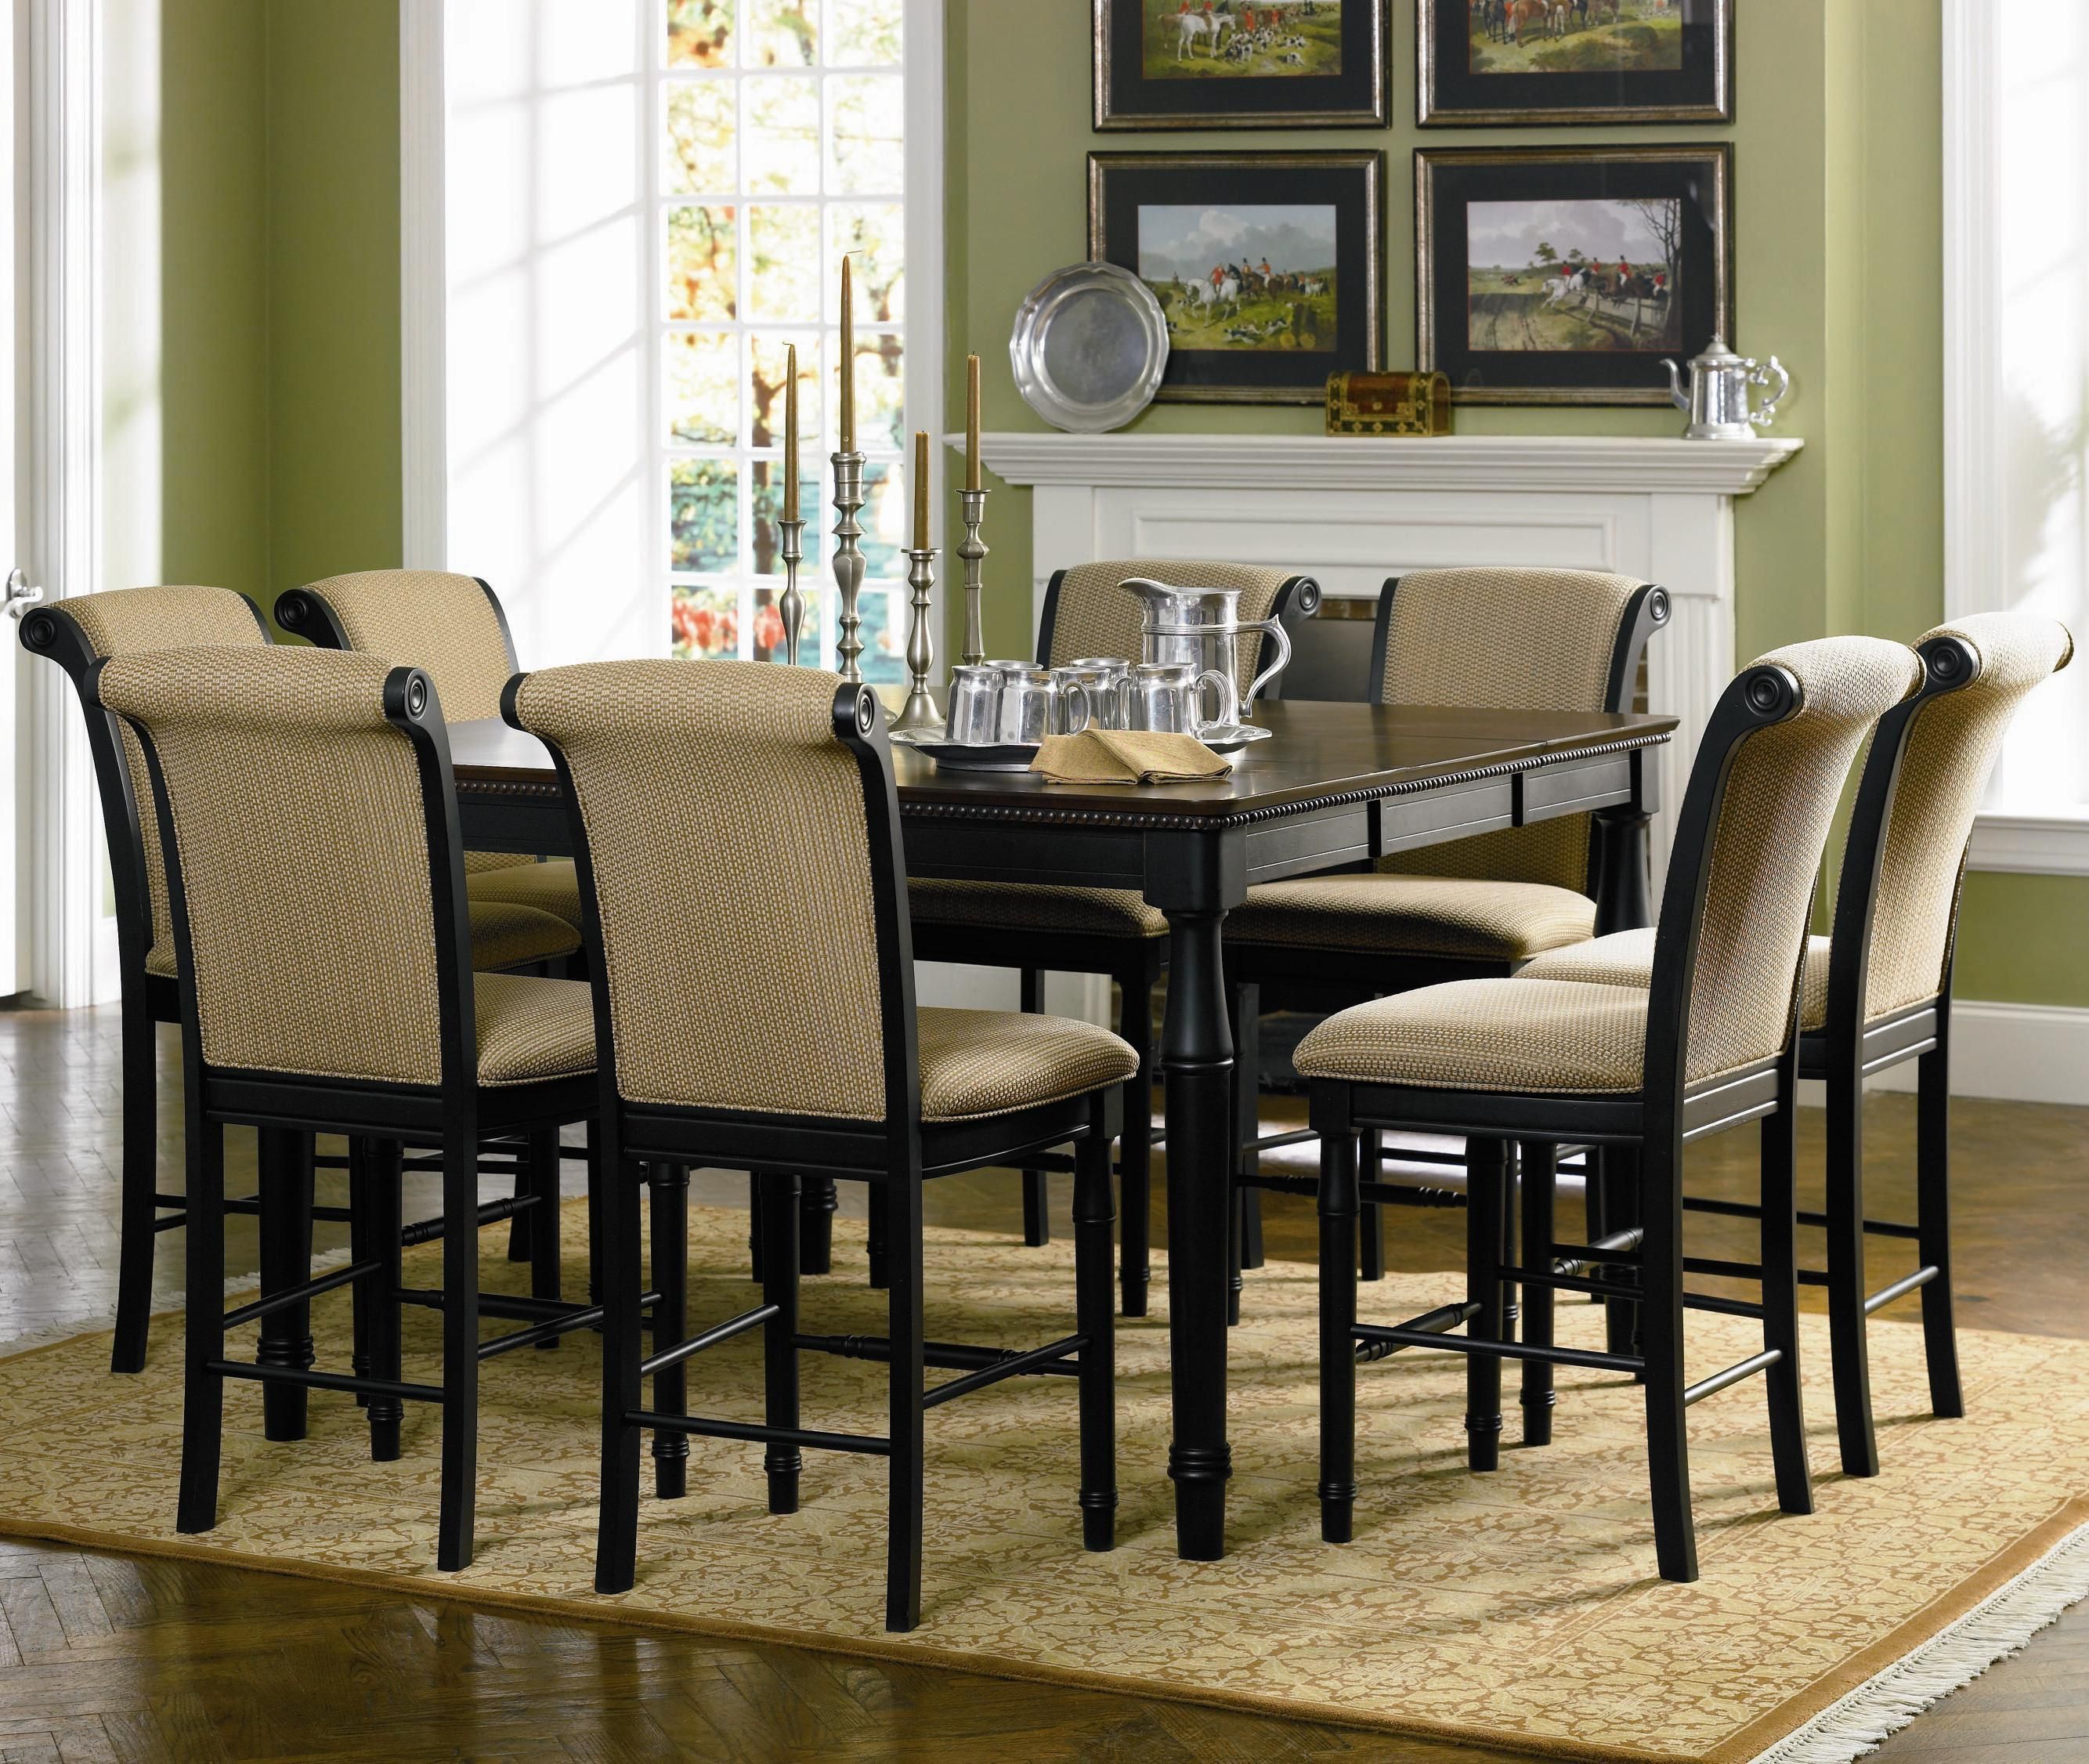 Cabrillo 9 Piece Counter Height Dining Setcoaster  Counter Entrancing Coaster Dining Room Furniture Review